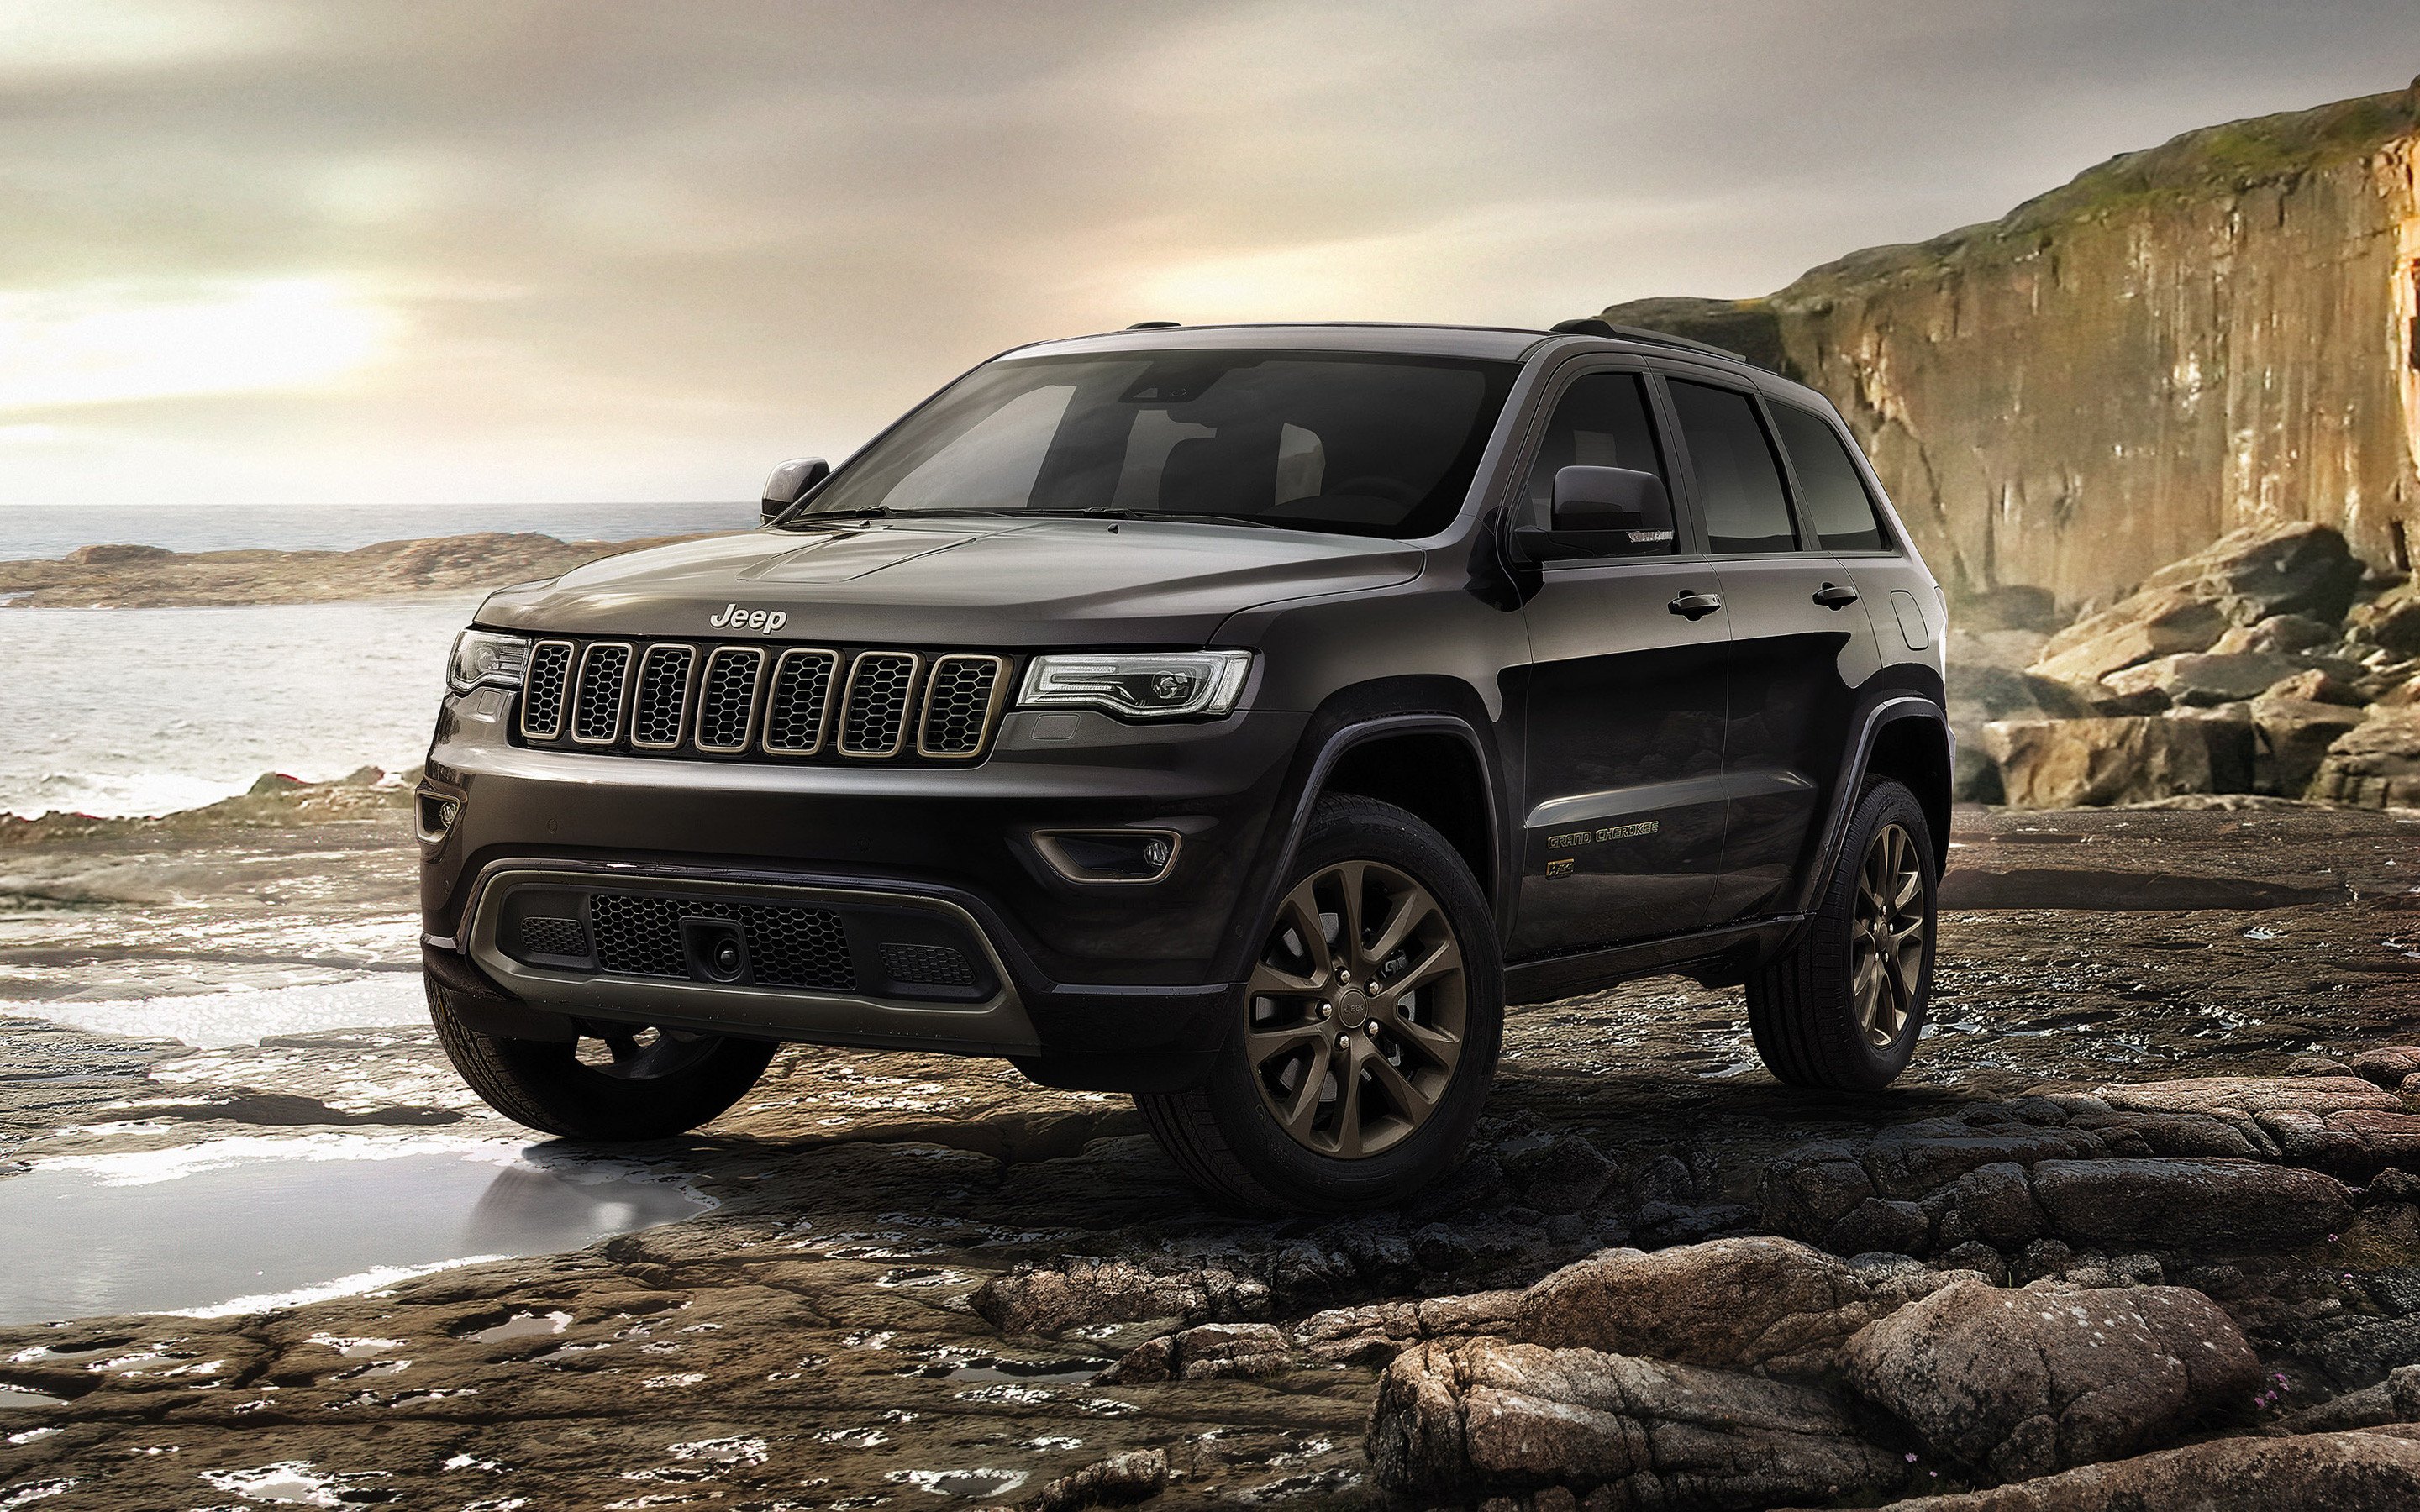 Res: 2880x1800, Jeep Grand Cherokee Wallpapers